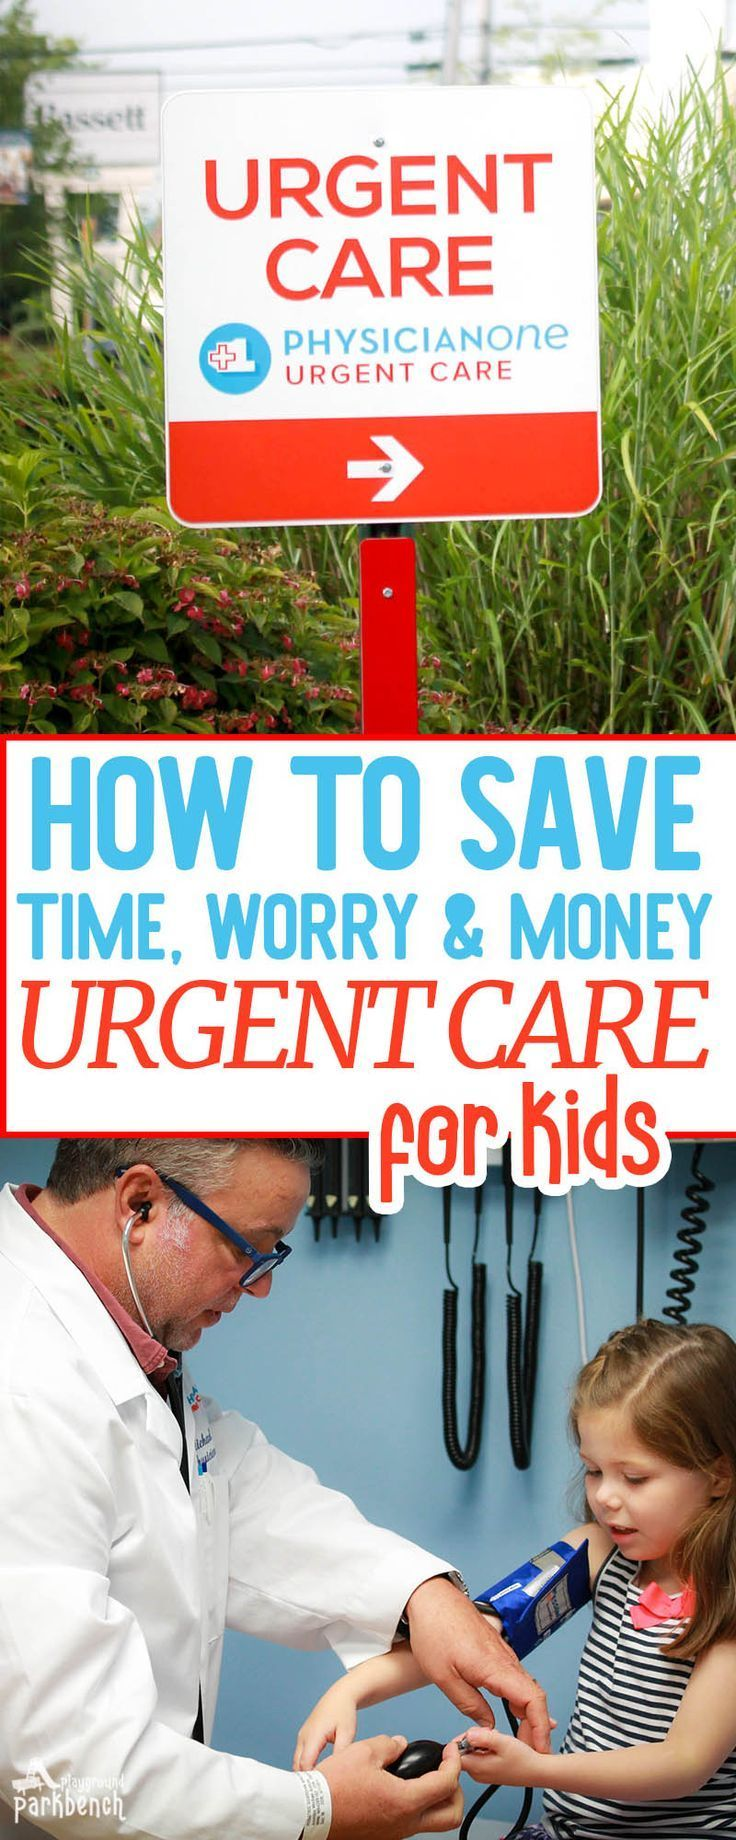 Urgent care centers can help bridge the gap between primary care and ER visits #AD Open 365 days a year, with extended hours, you can get urgent care for kids when you can't visit your pediatrician, and for non life-threatening illnesses and injuries. Learn more about how urgent care for kids can save you time, worry and money | Kids Health | Kids Healthcare | Family Finances | Family Health | Family Healthcare